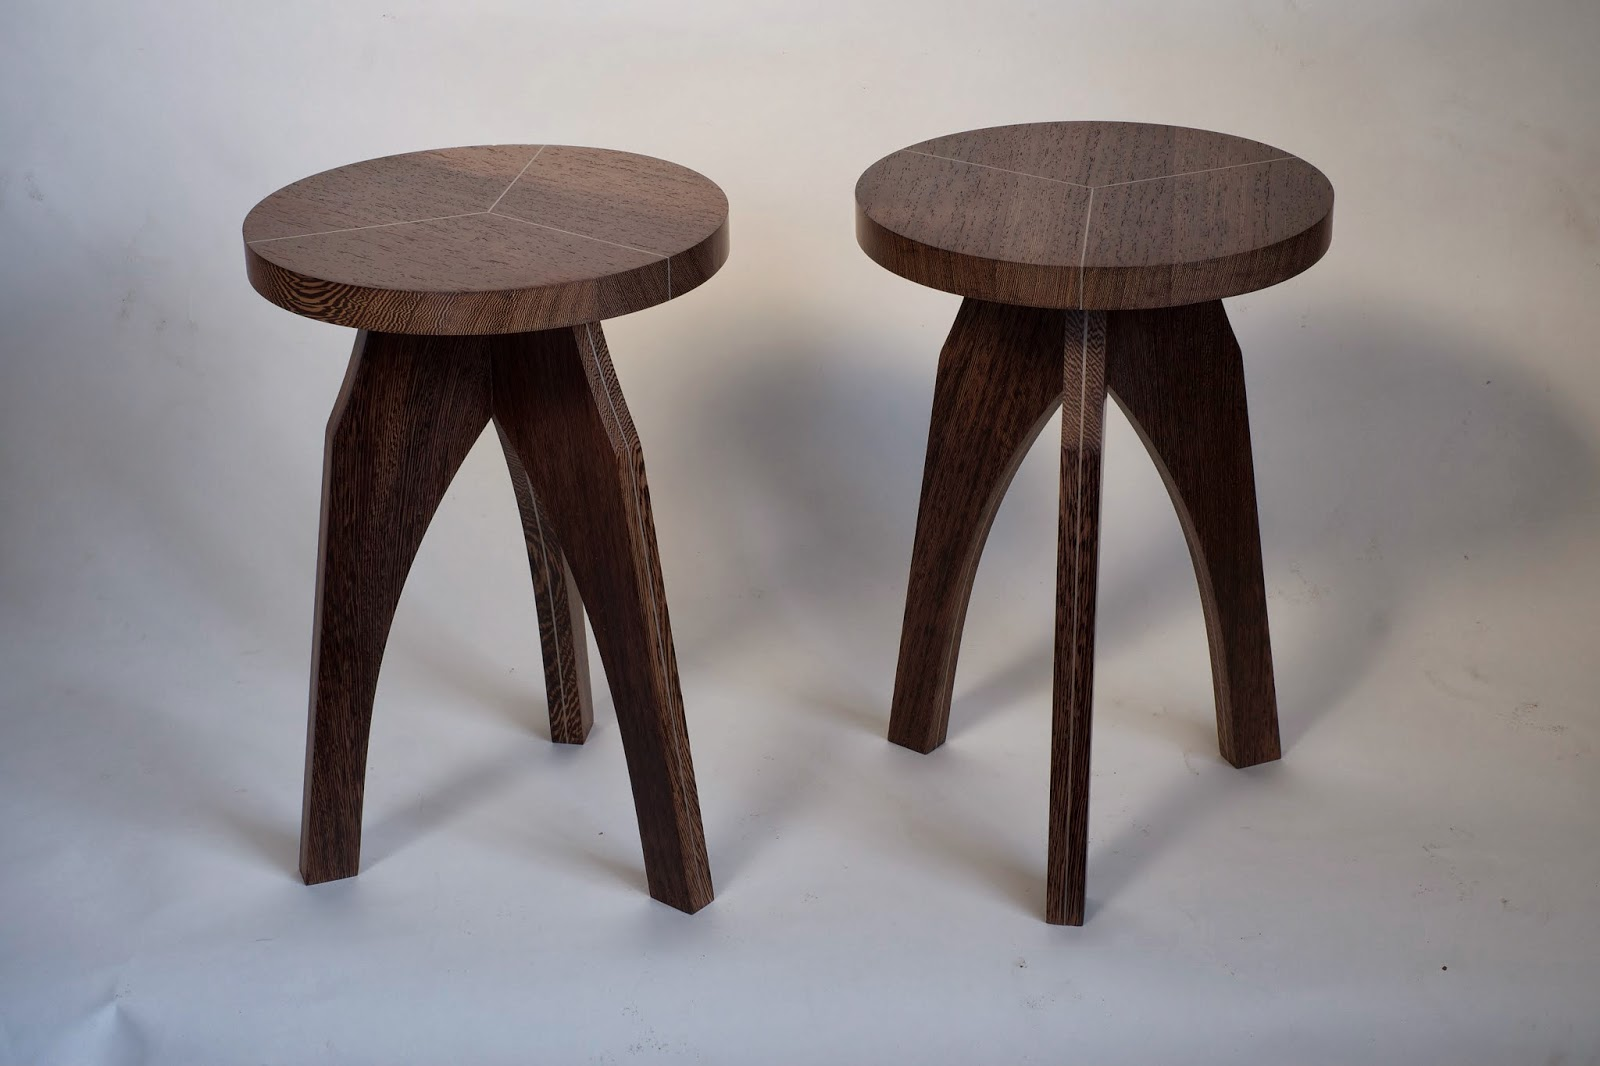 Marvelous photograph of  Seats and Stools on Pinterest Stools Bar Stools and Wood Stool with #2C1B17 color and 1600x1066 pixels